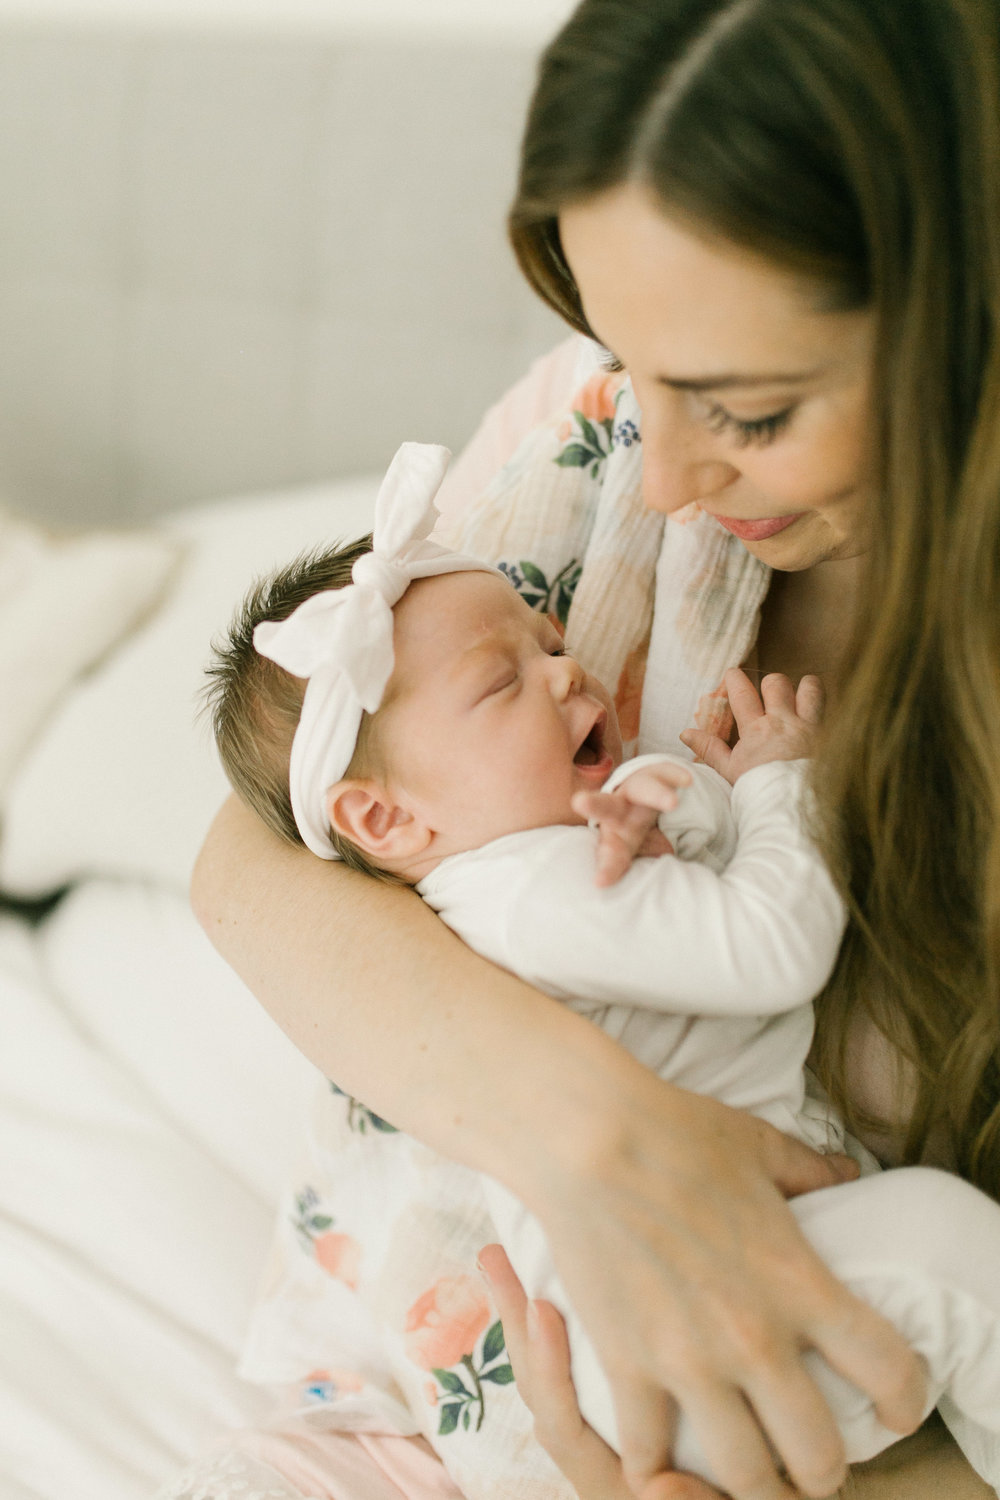 At Home Lifestyle Newborn And Family Photos | Chelsea Macor Photography-10.jpg